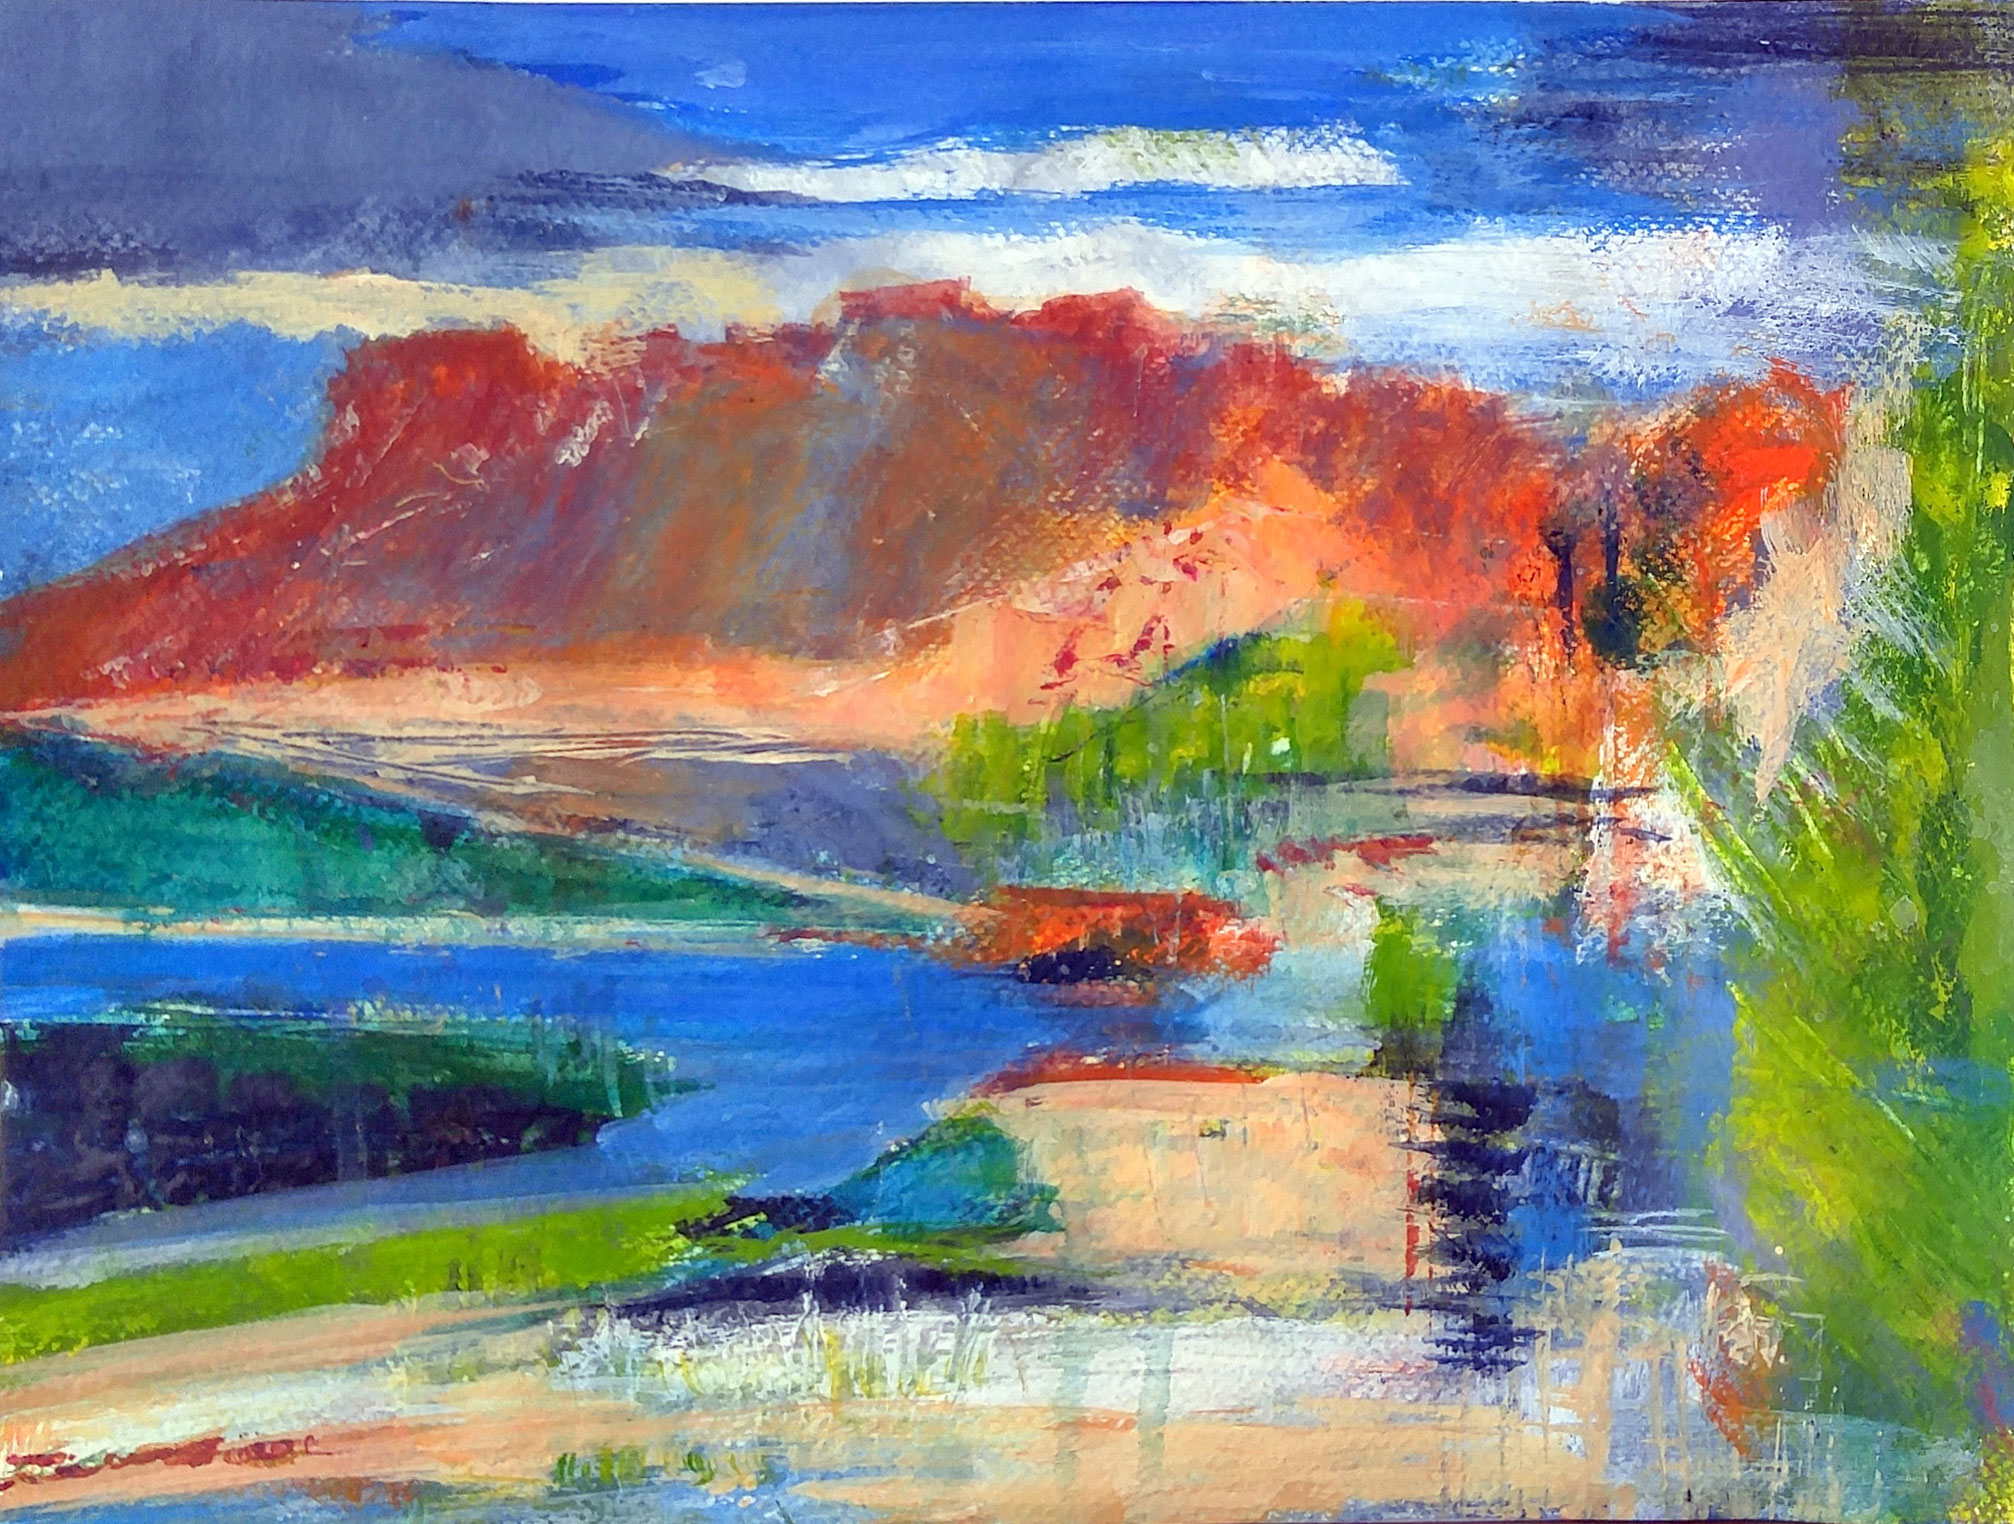 Jackie Sherwood Painting Abstracts Behind the Peak